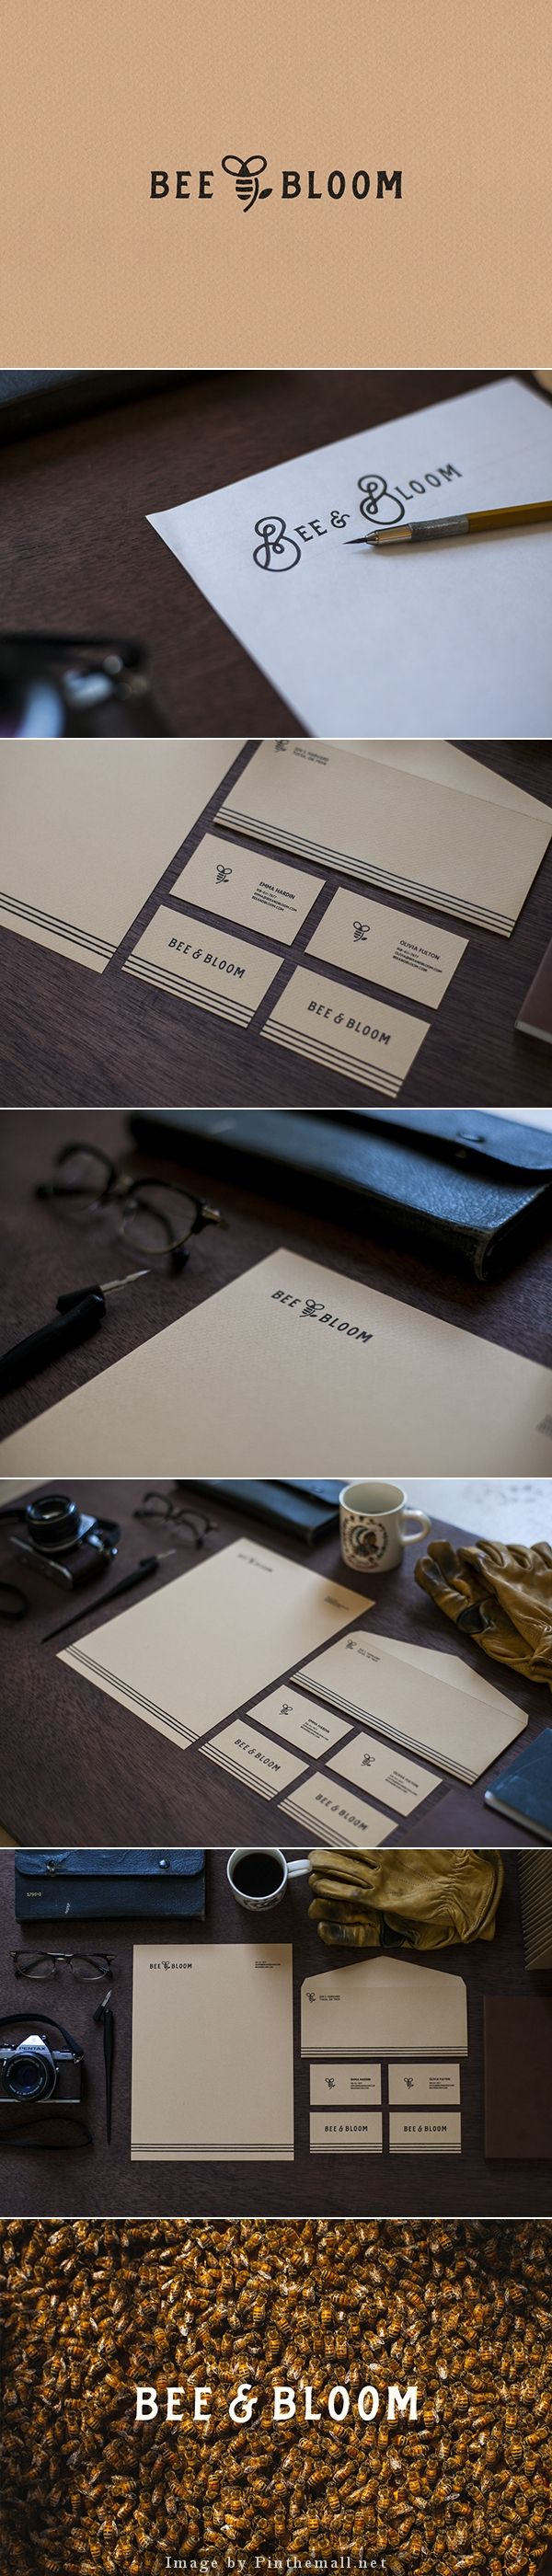 Bee and bloom branding corporate identity stationary logo letterhead business card enveloppe minimal graphic design kraft paper texture handlettering type typography